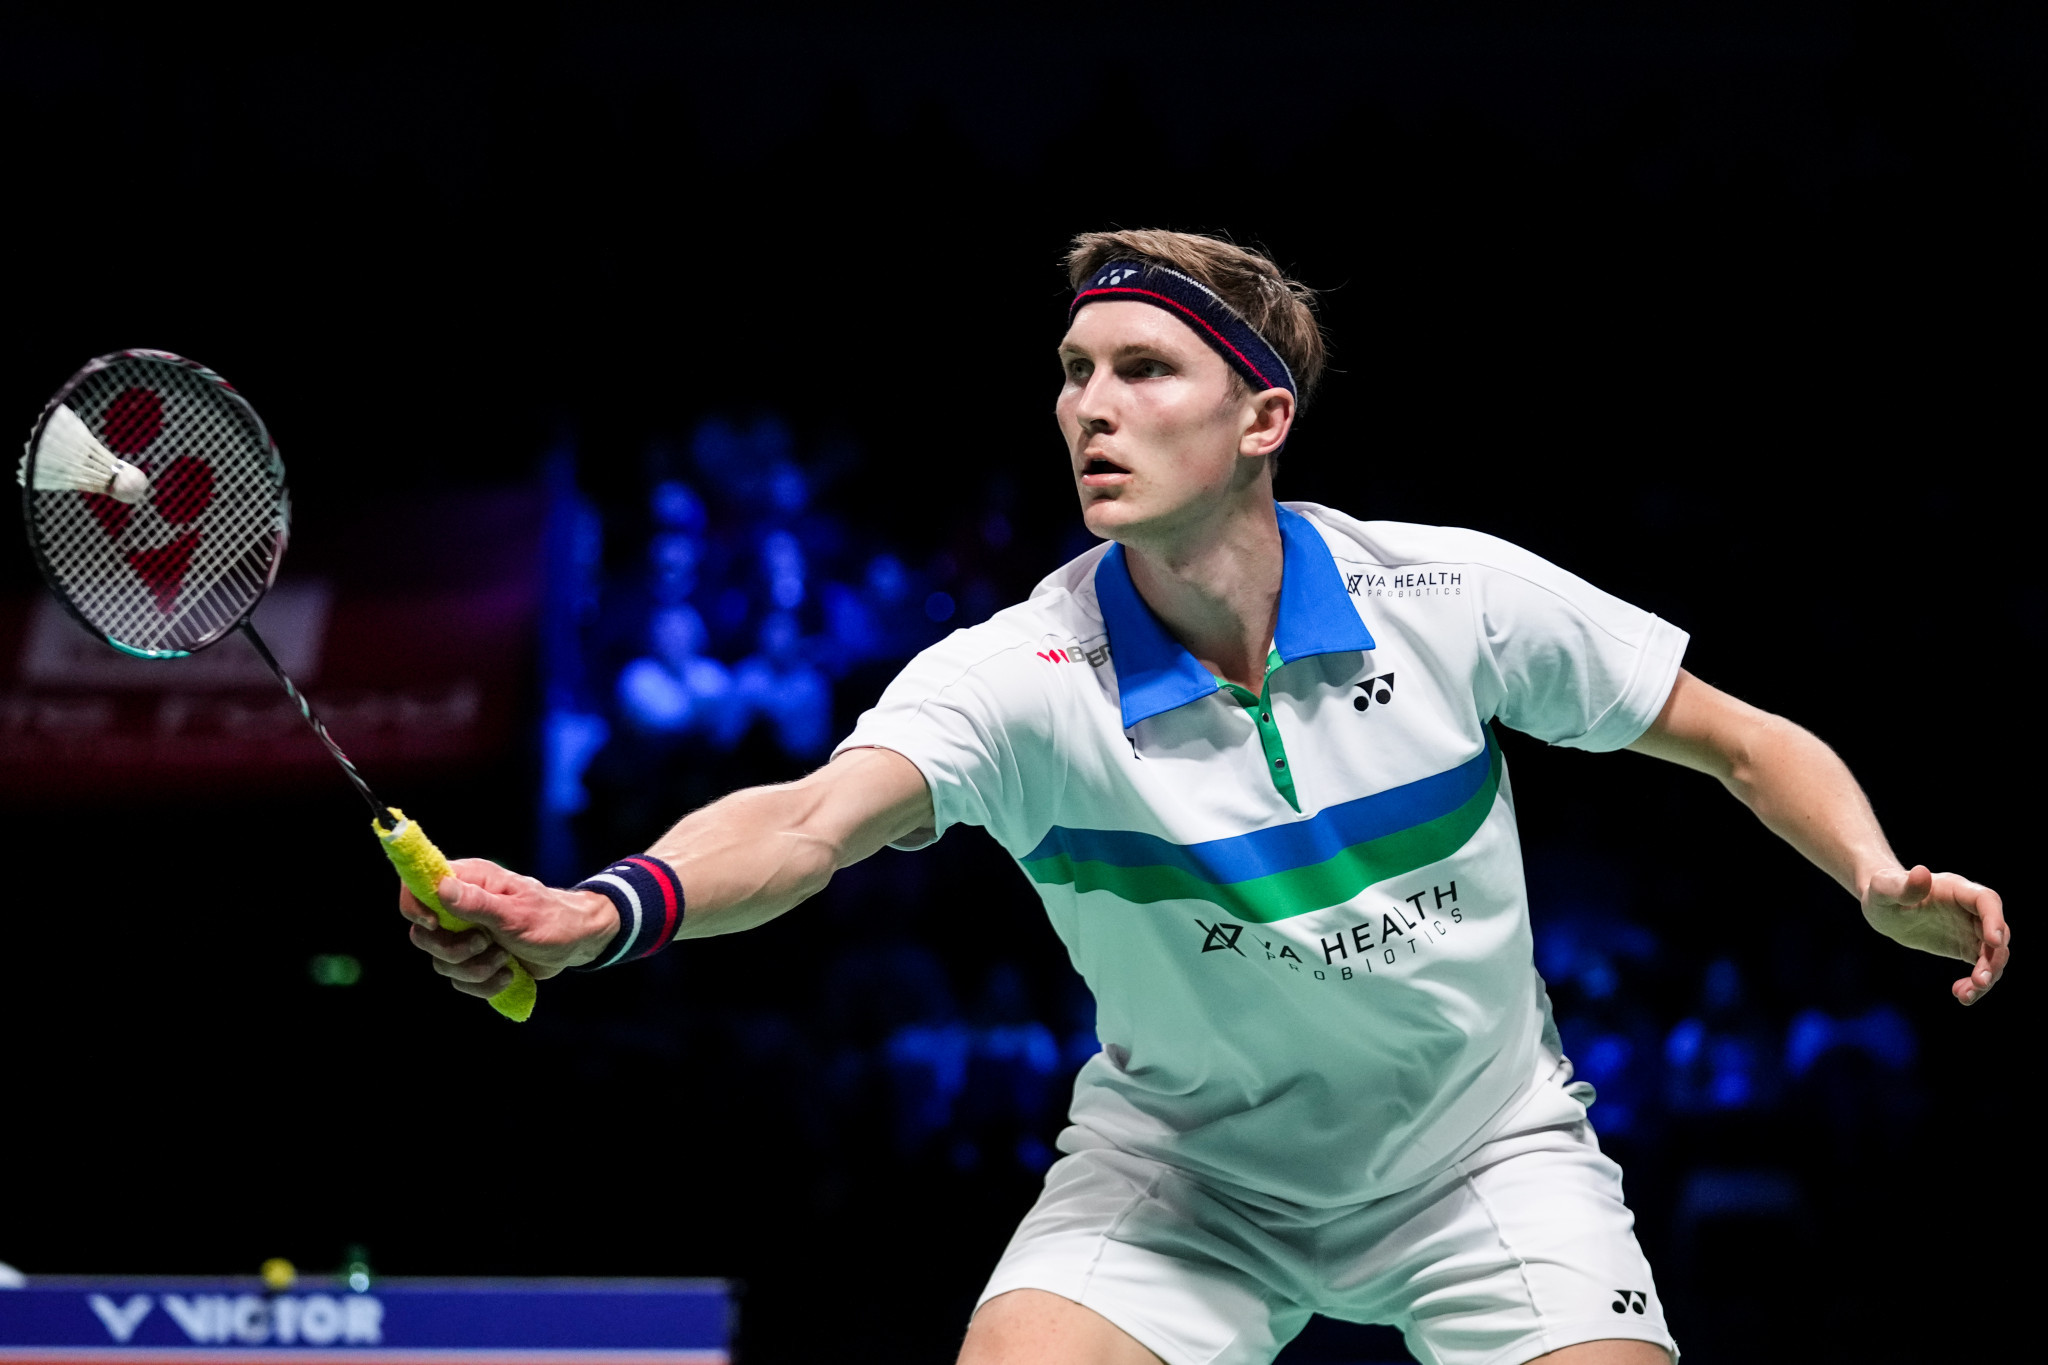 Denmark Open champion Axelsen retires after one point as Kento edges through at French Open 2021